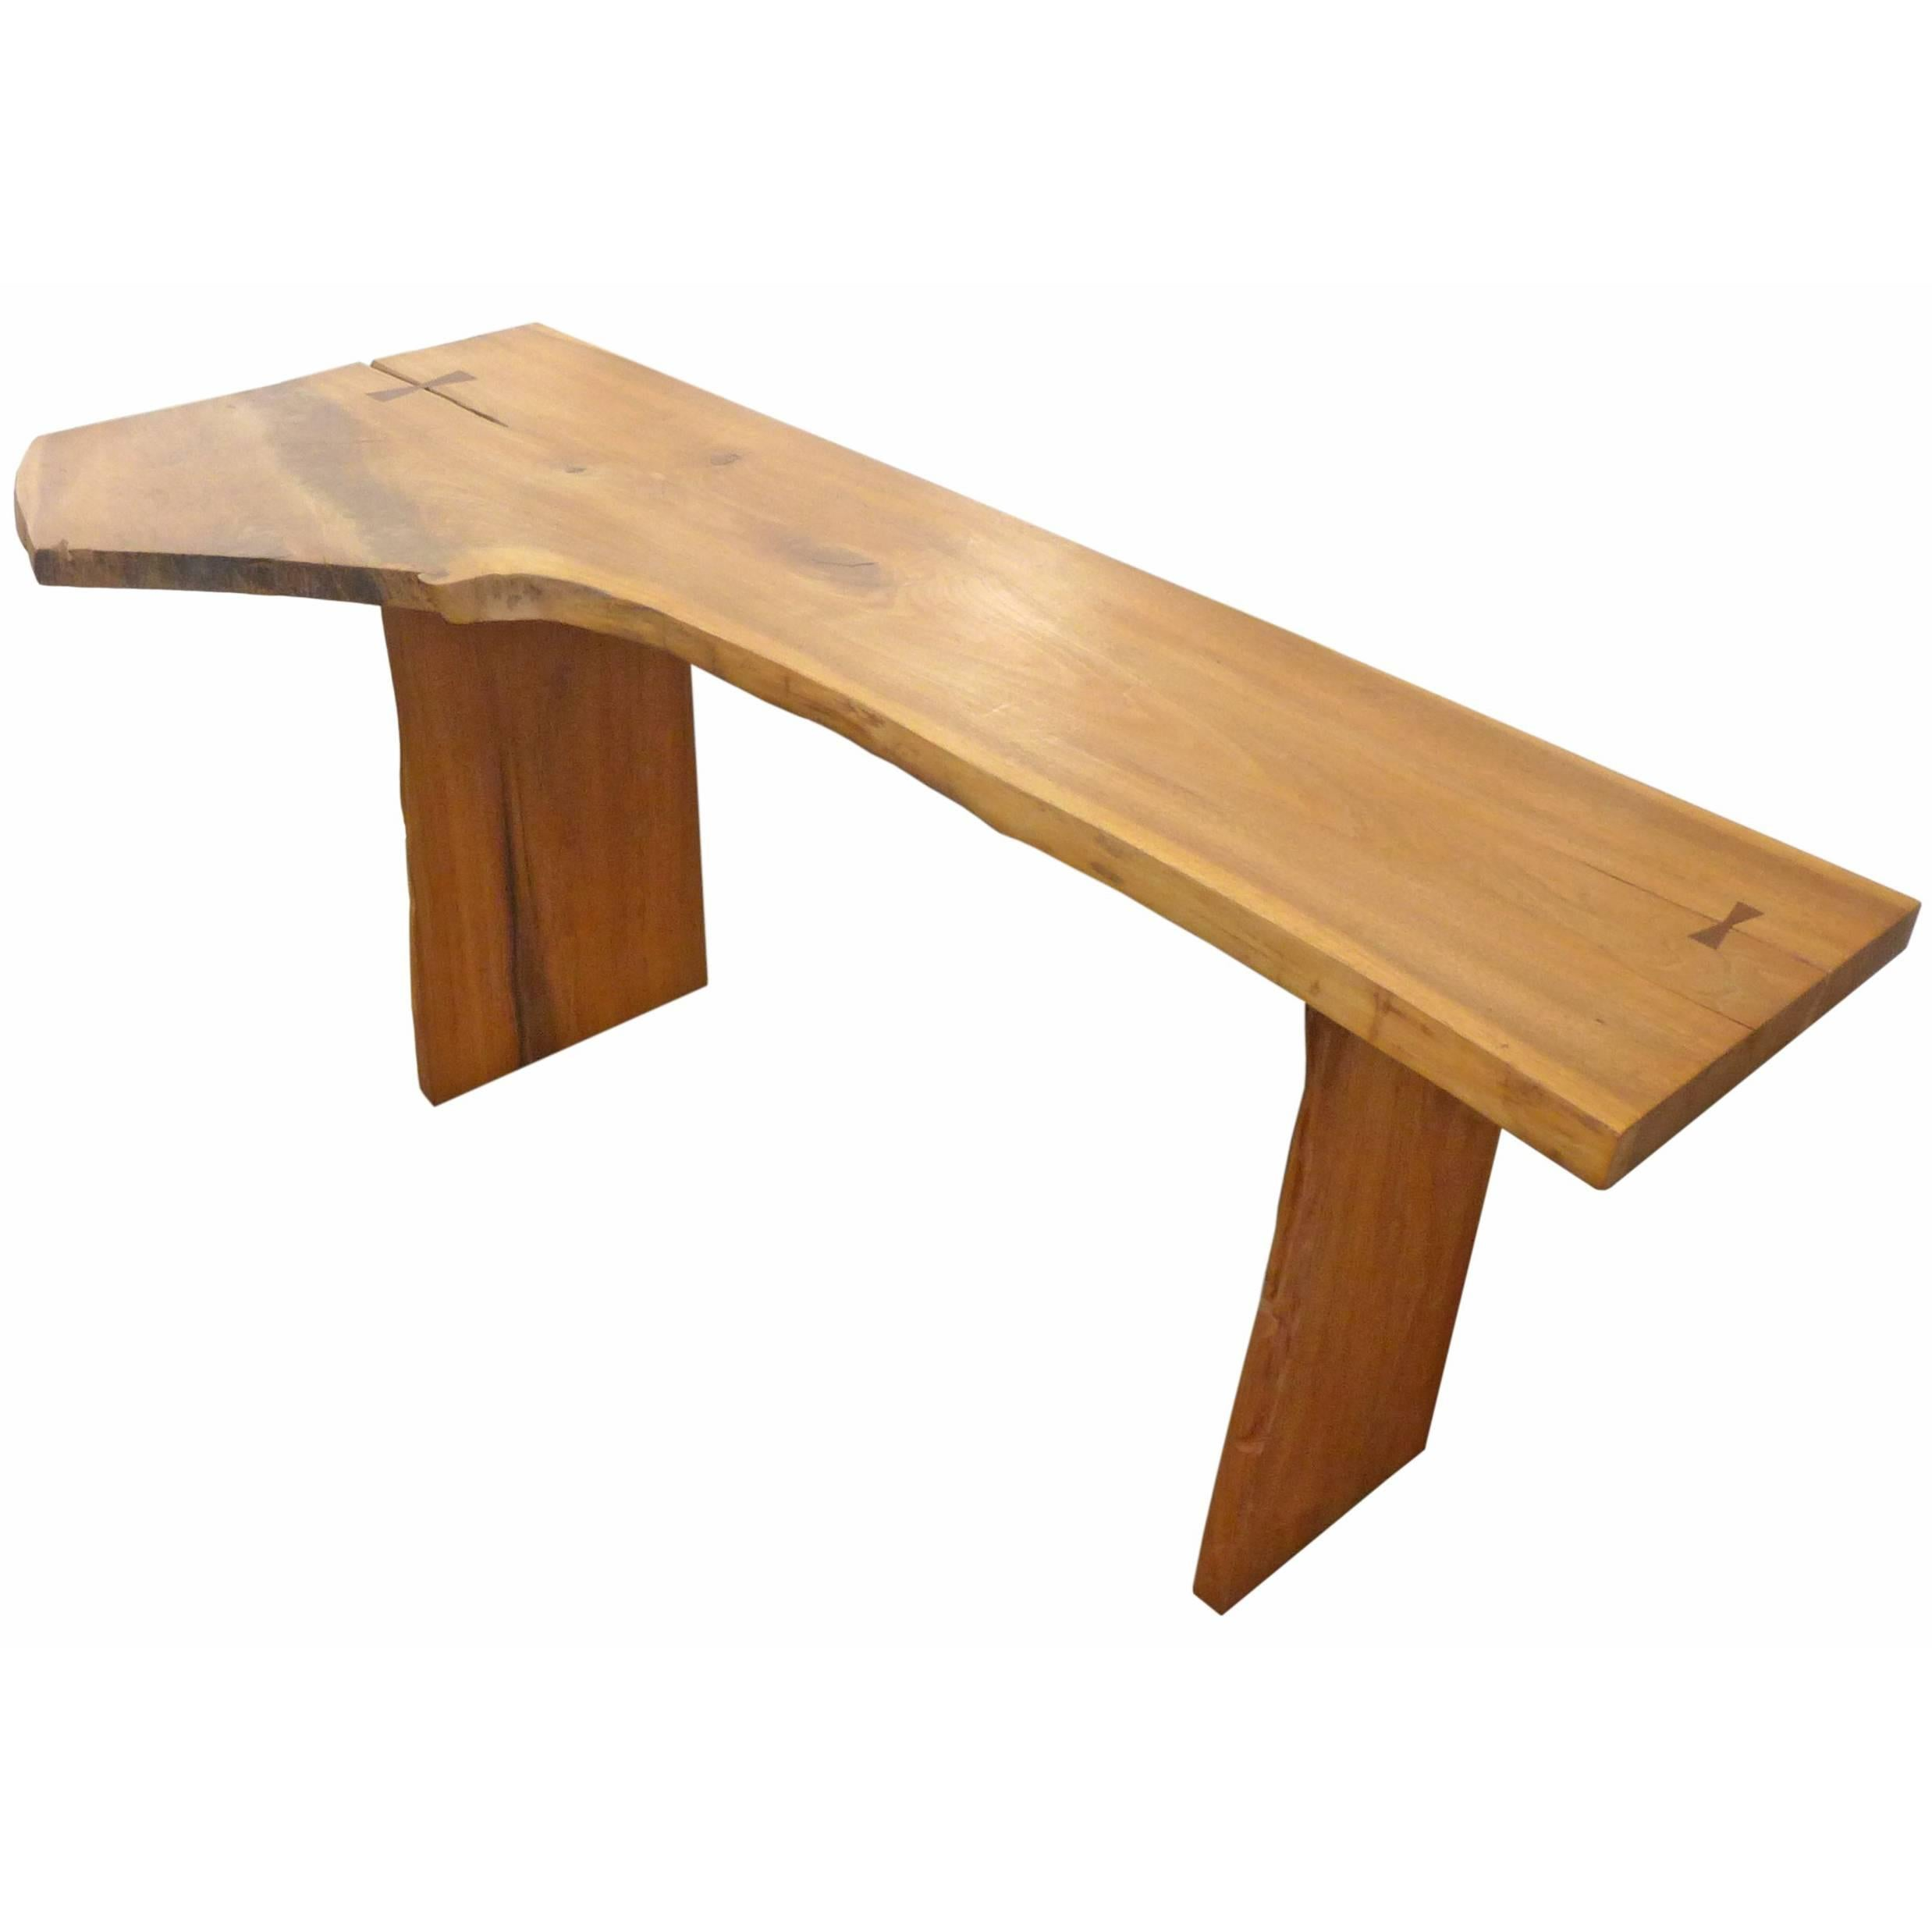 Organic Wood Desk Or Console Table